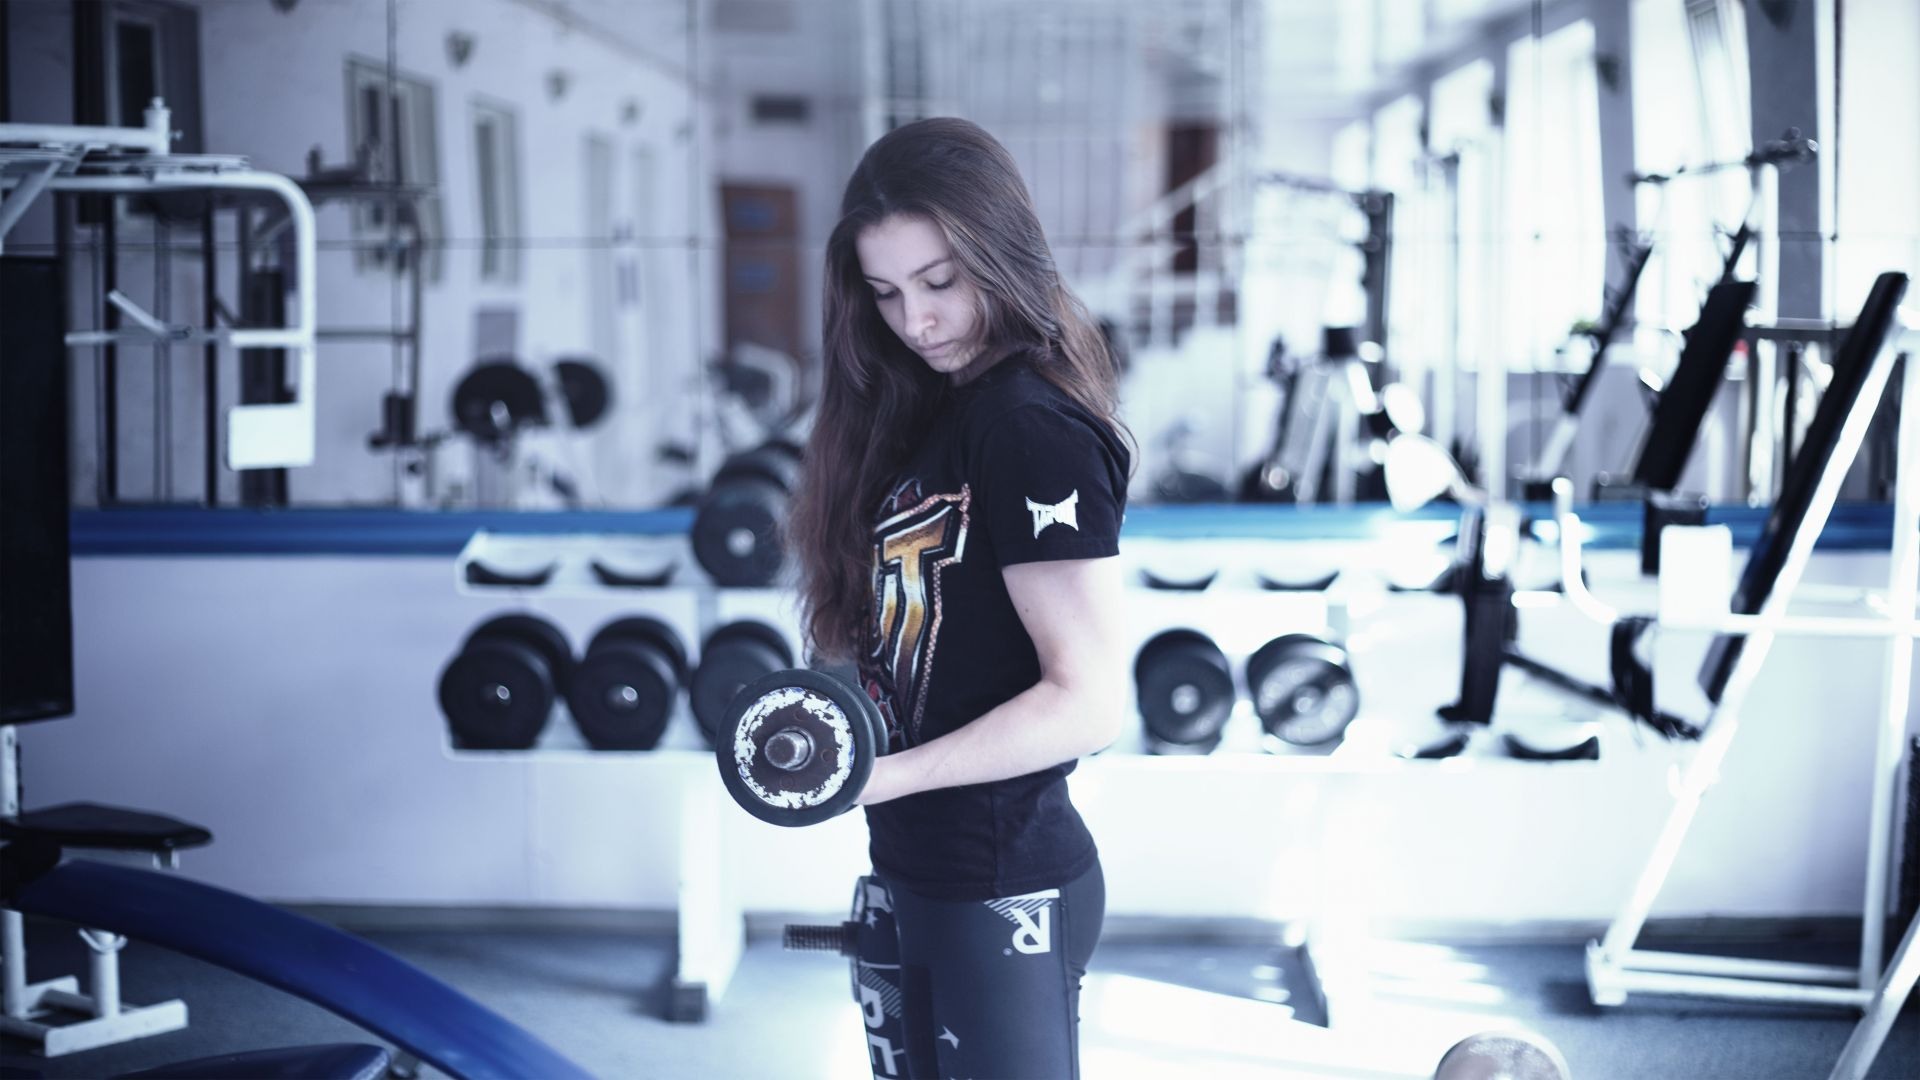 Girl, fitness, exercise, gym, dumbbells, workout, sportswear, motivation (horizontal)